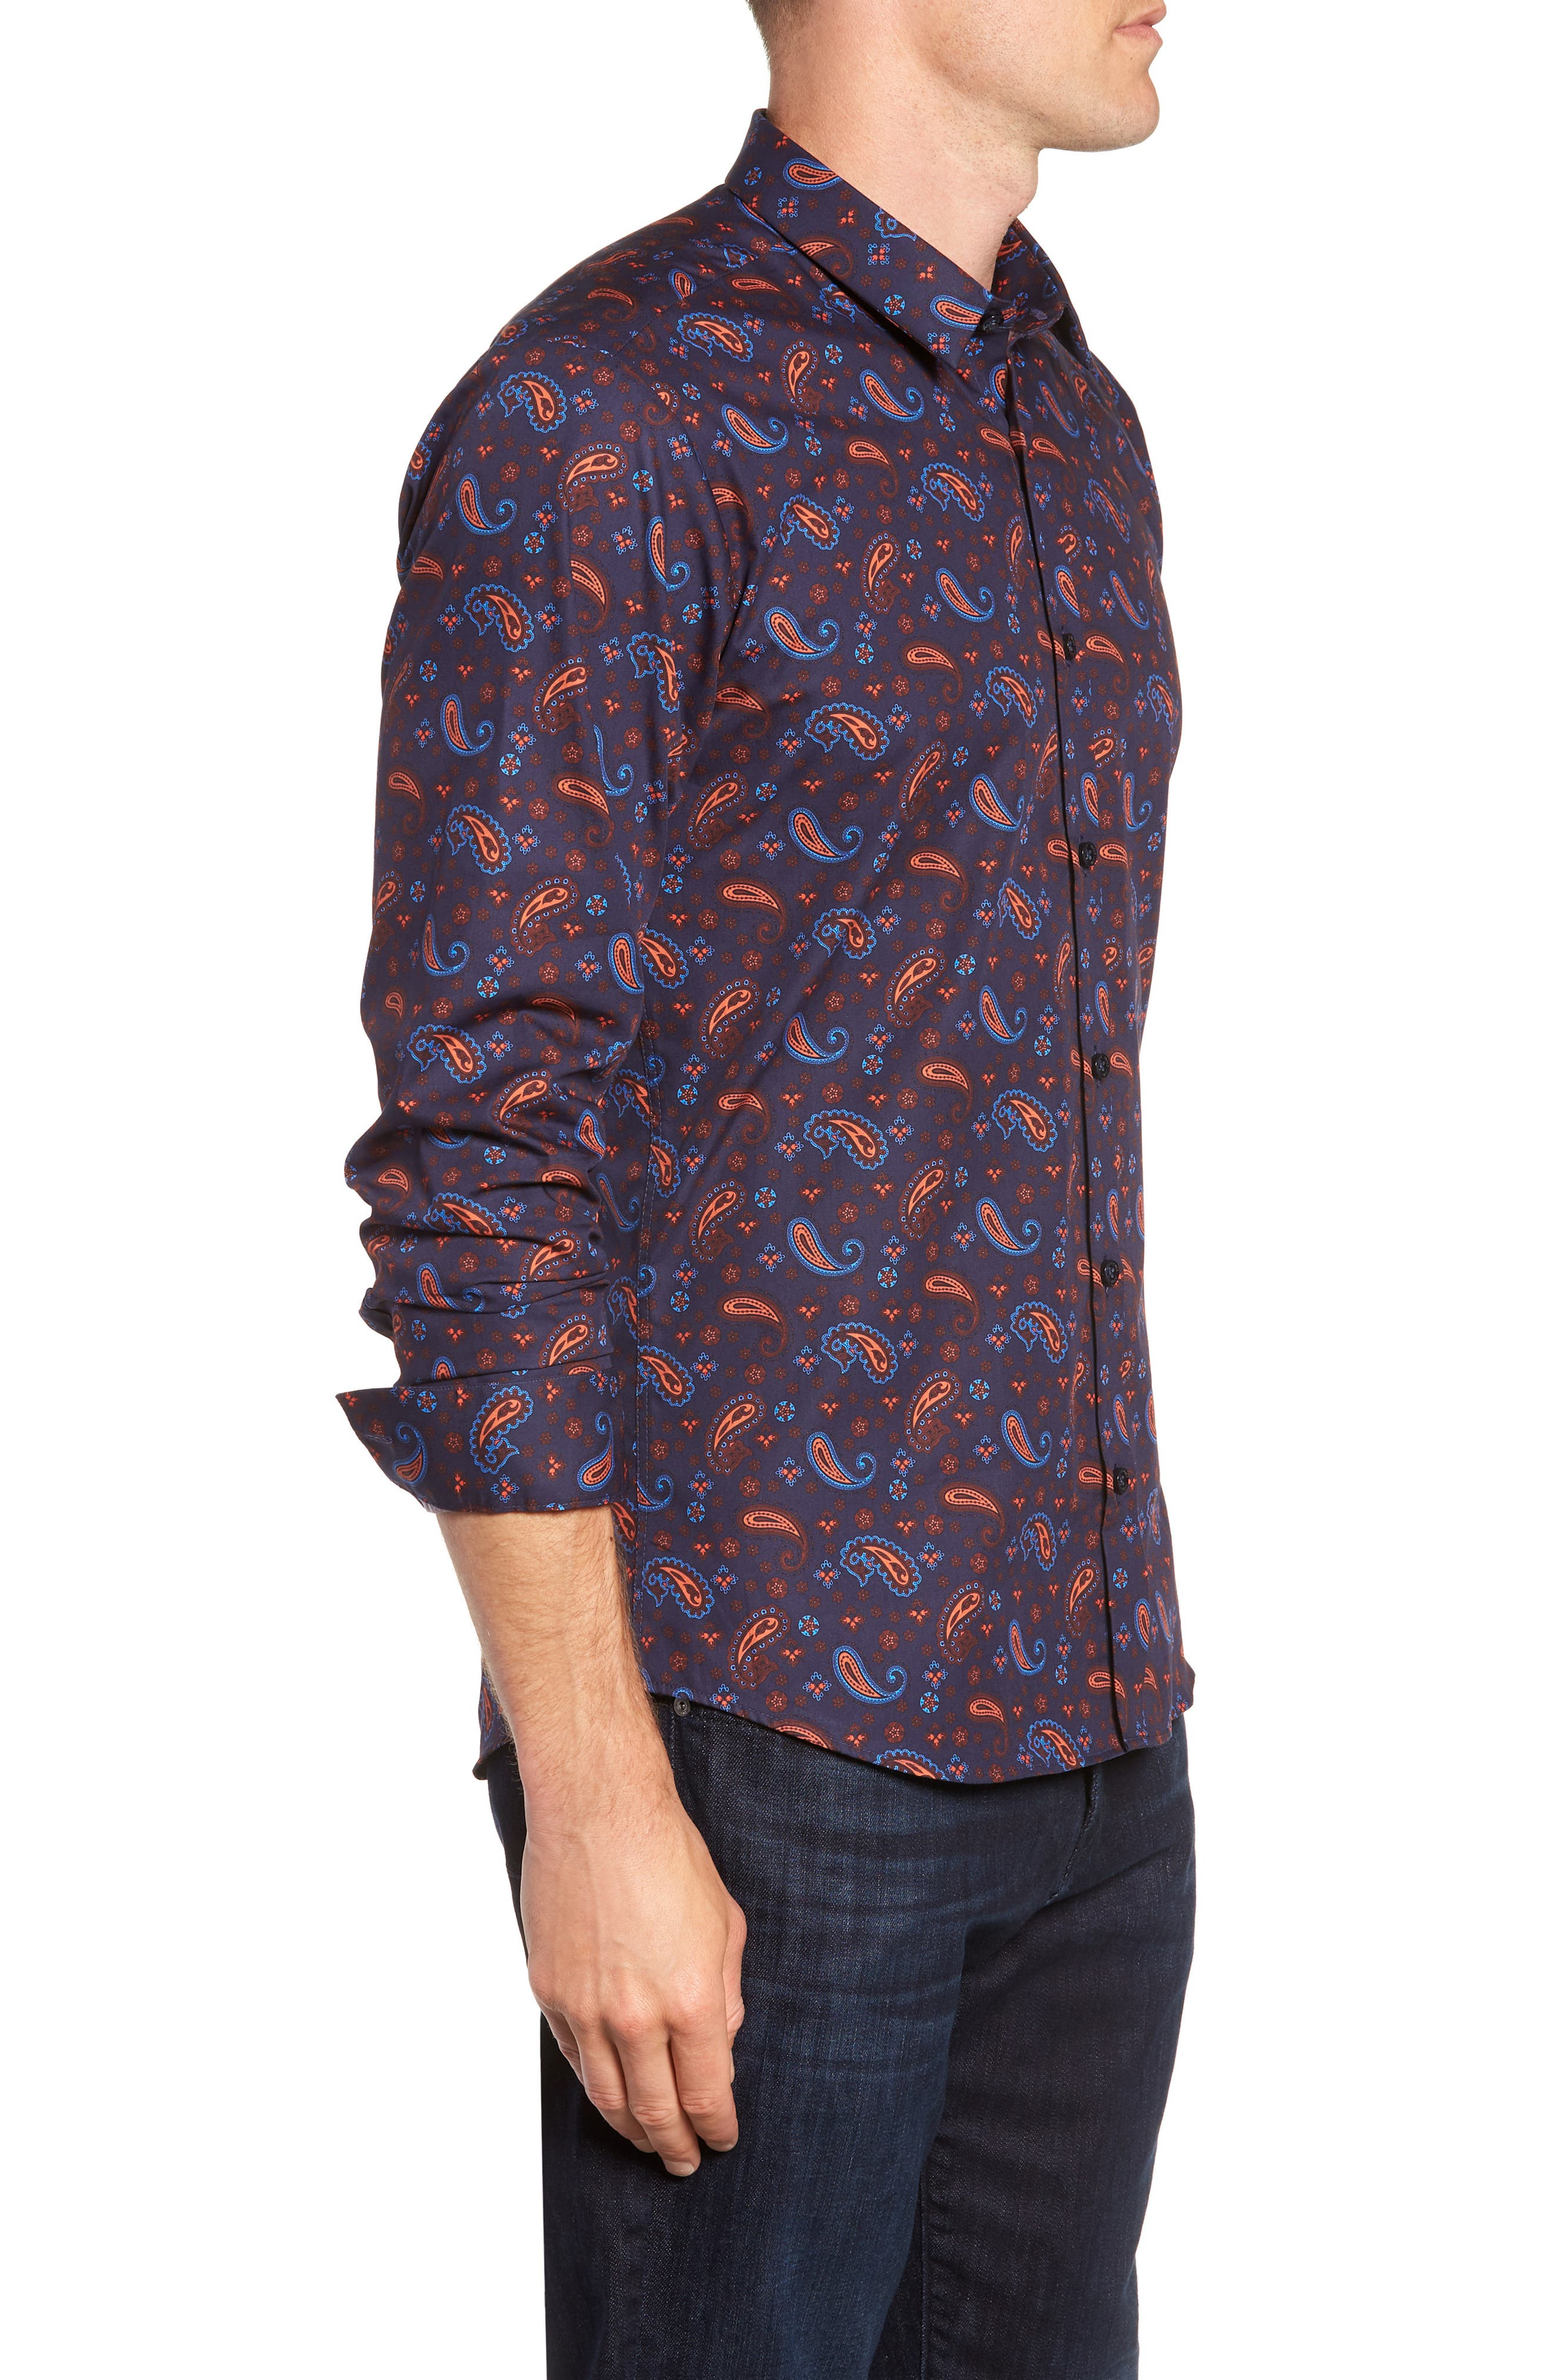 Paisley Print Sport Shirt,                             Alternate thumbnail 4, color,                             Navy Orange Print